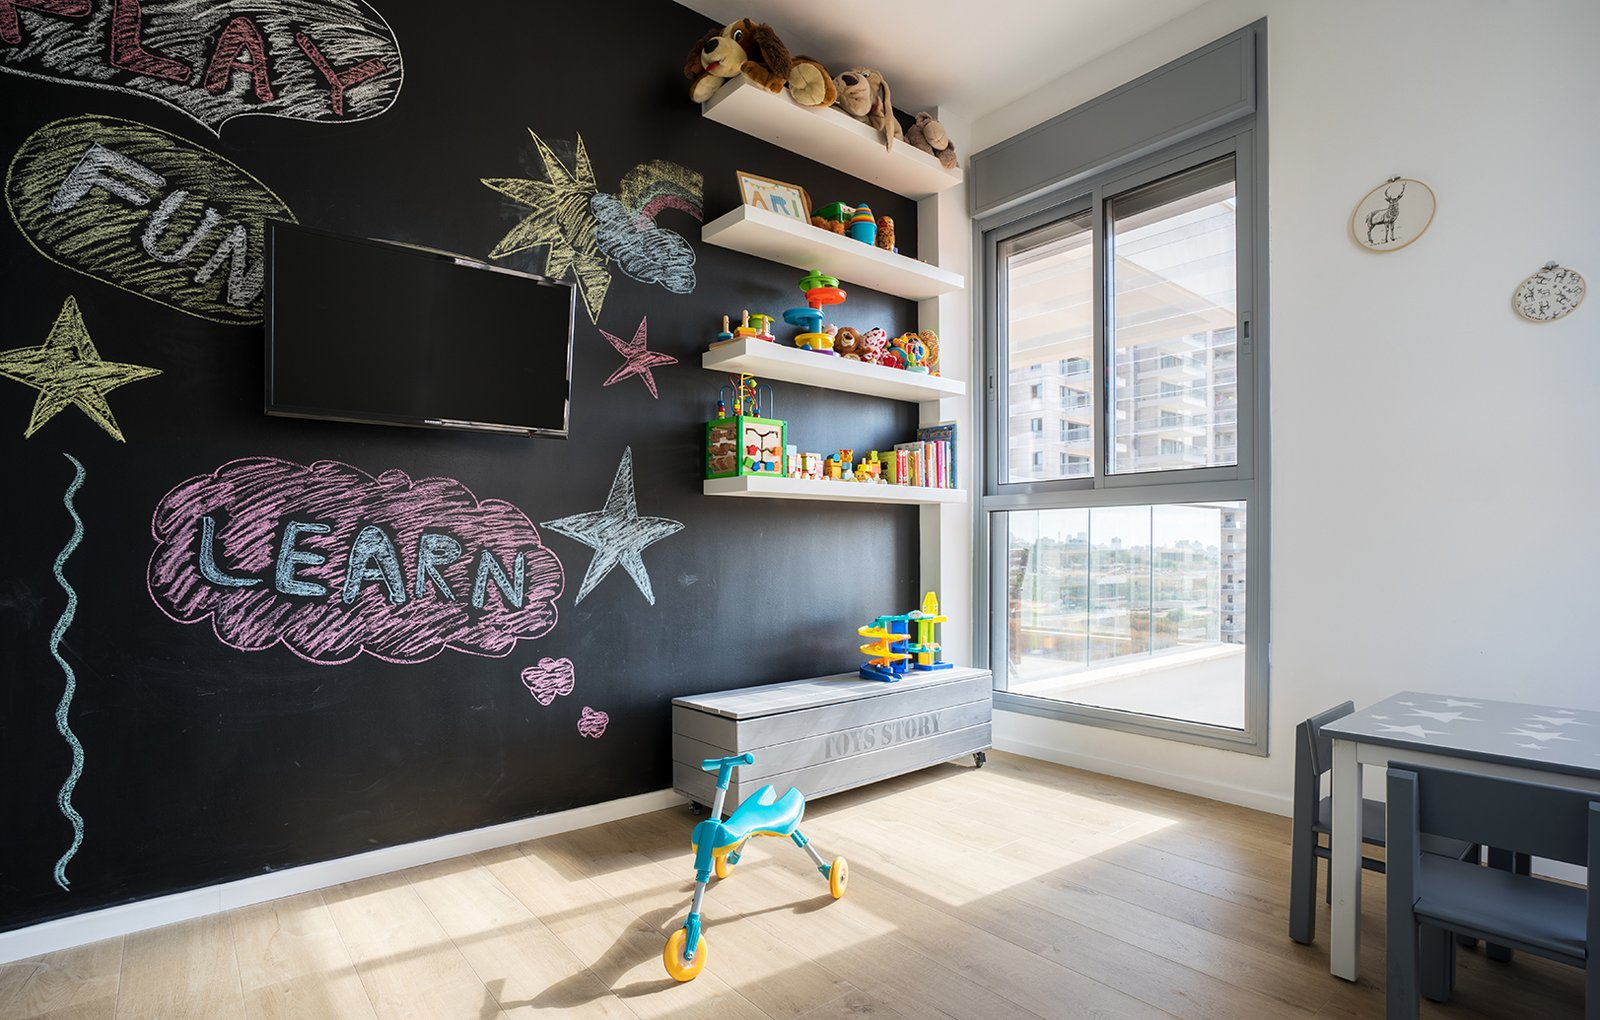 Kids Room, Bedroom Room Type, Shelves, and Light Hardwood Floor A chalkboard wall encourages creative exploration in the child's room.  Photo 4 of 4 in A Riotous Makeover for a Generic  High-Rise Home